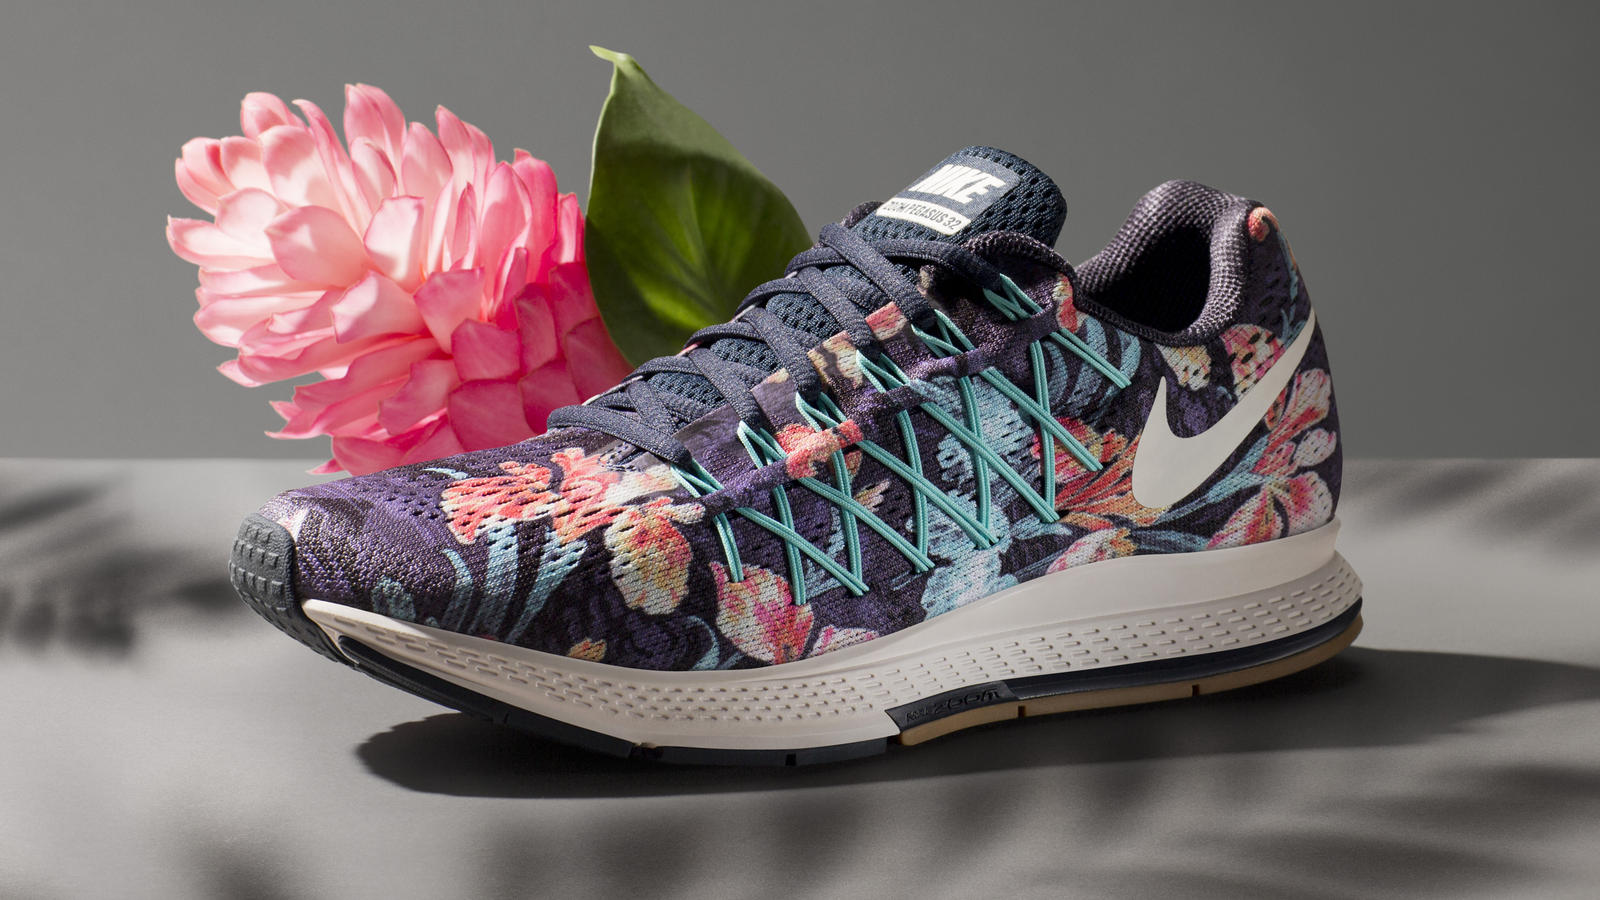 skilja censur hund  Run in Full Bloom: The Nike Photosynthesis Pack - Nike News